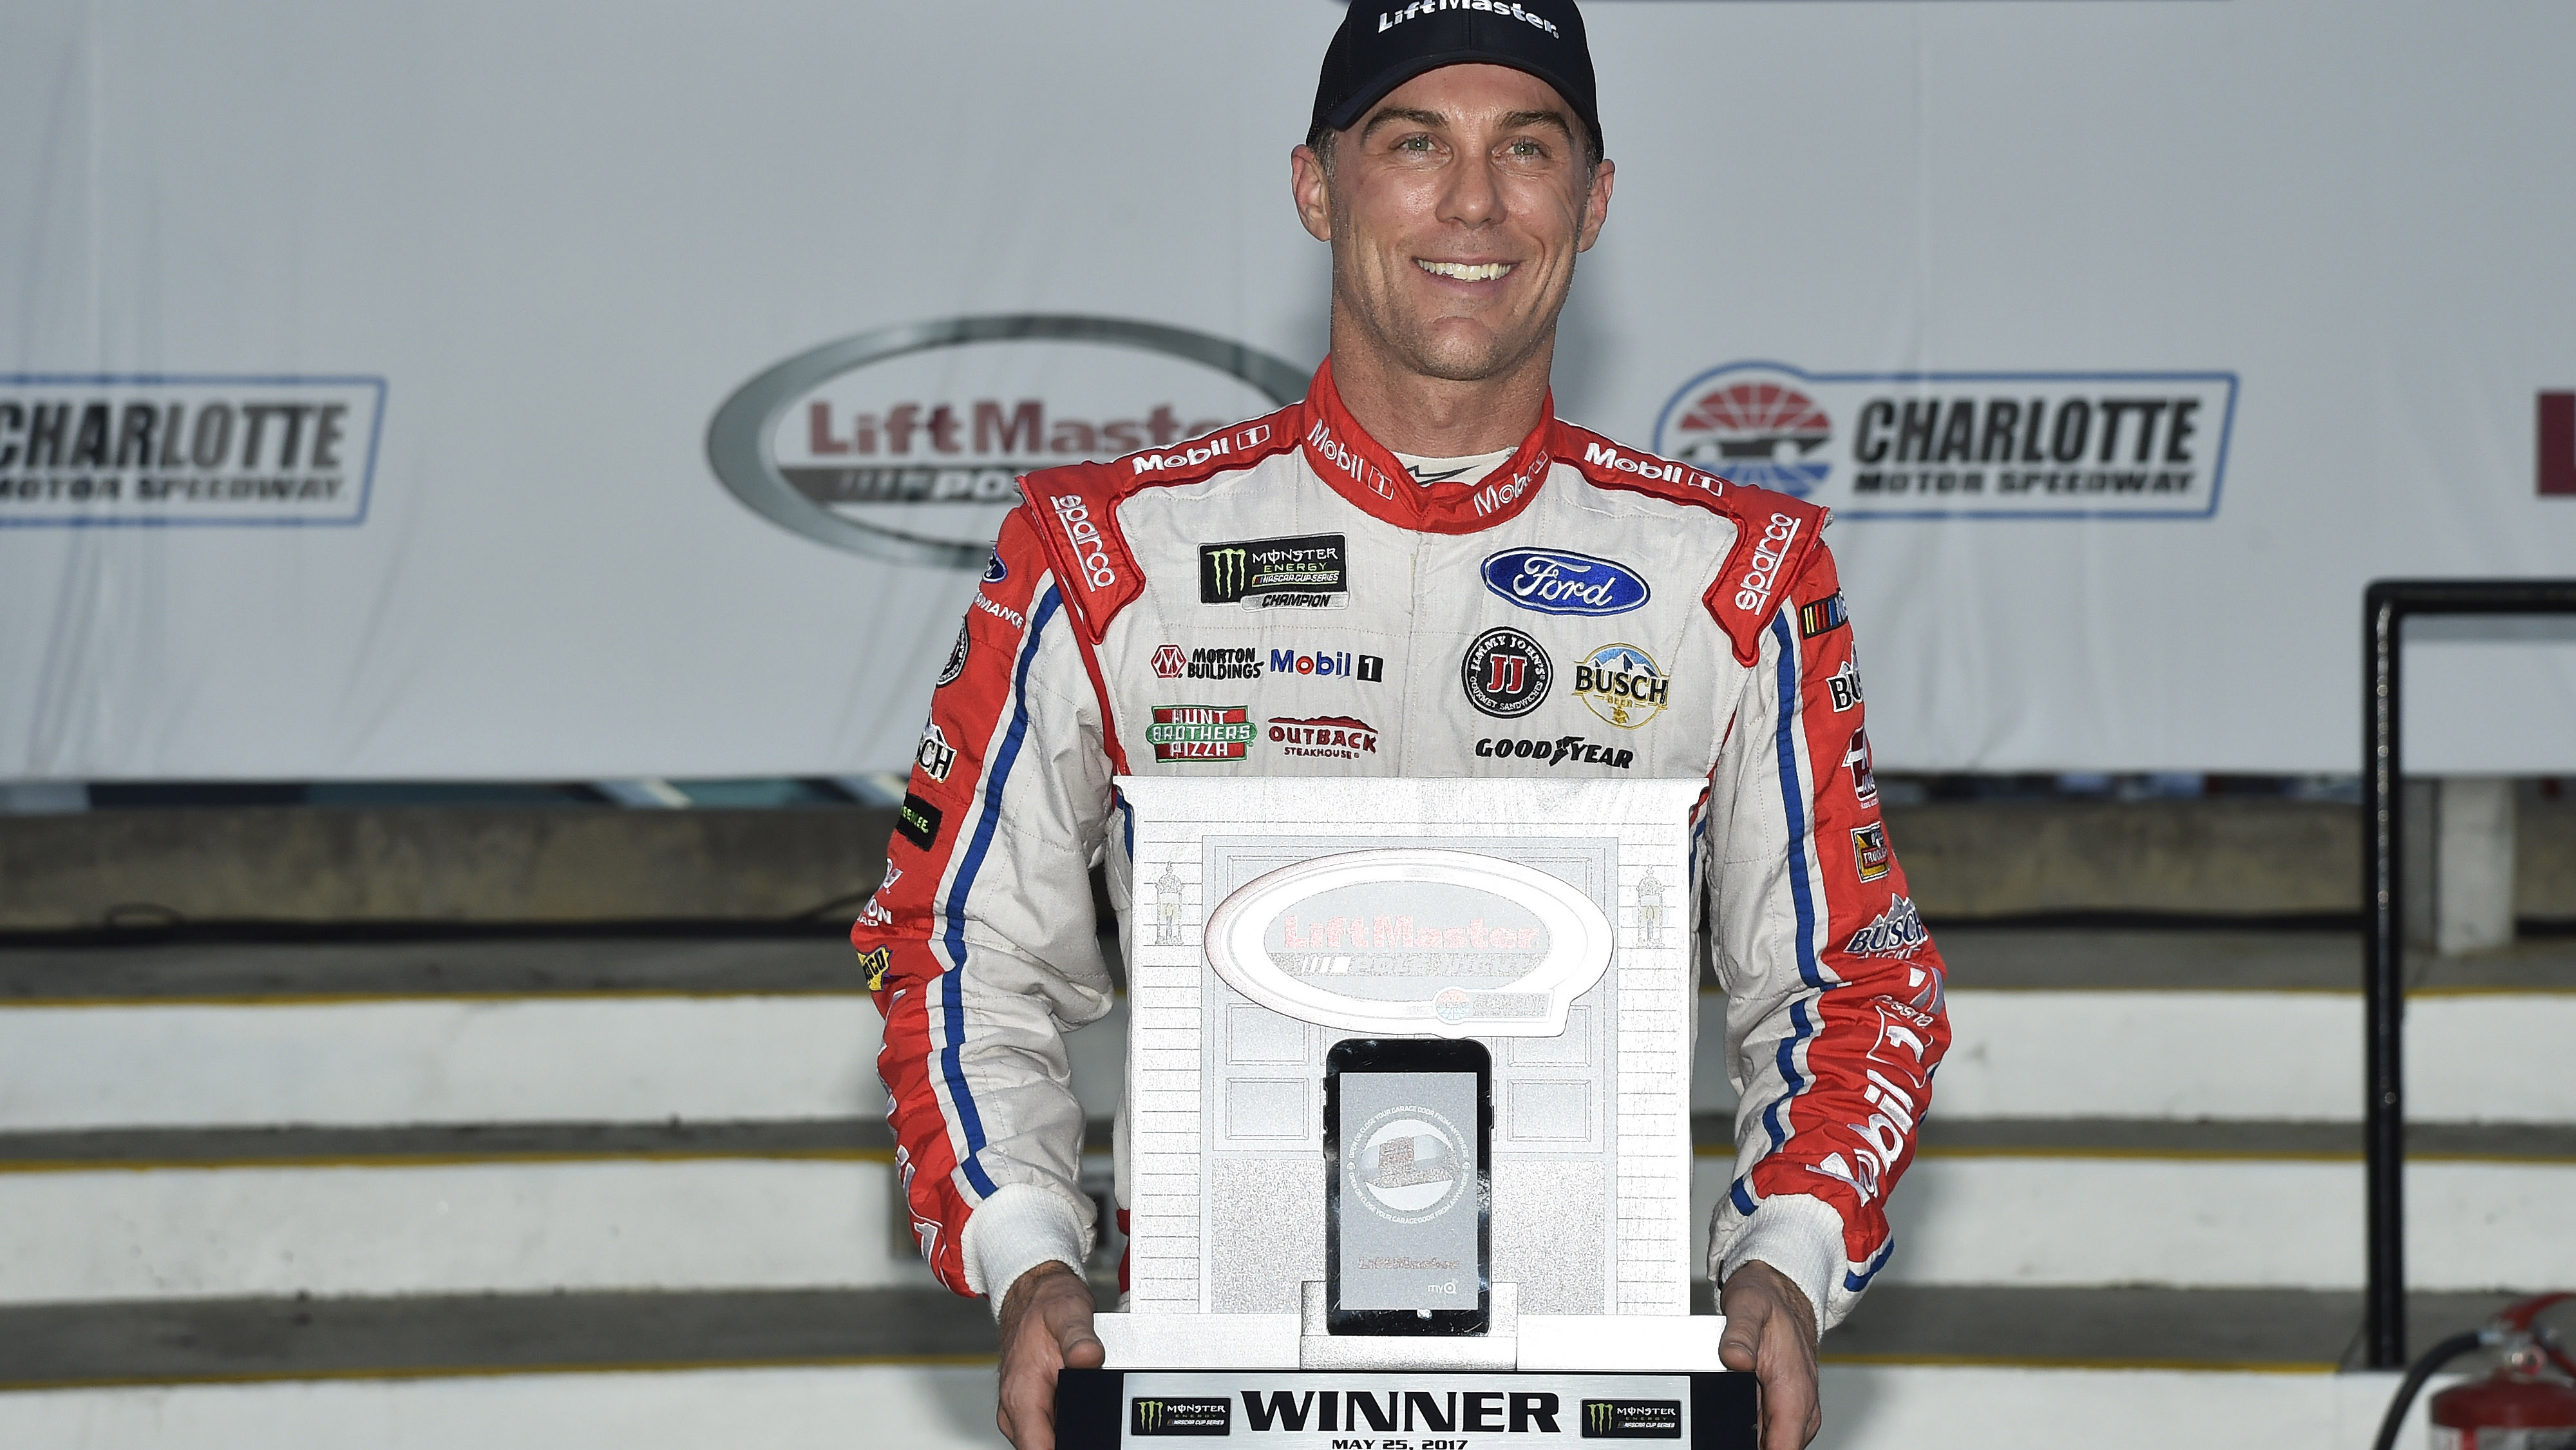 Monster Energy NASCAR Cup Series Coca-Cola 600 Charlotte Motor Speedway, Concord, NC USA Thursday 25 May 2017 Kevin Harvick, Stewart-Haas Racing, Mobil 1 Ford Fusion Pole Winner World Copyright: Nigel Kinrade LAT Images ref: Digital Image 17CLT2nk02692